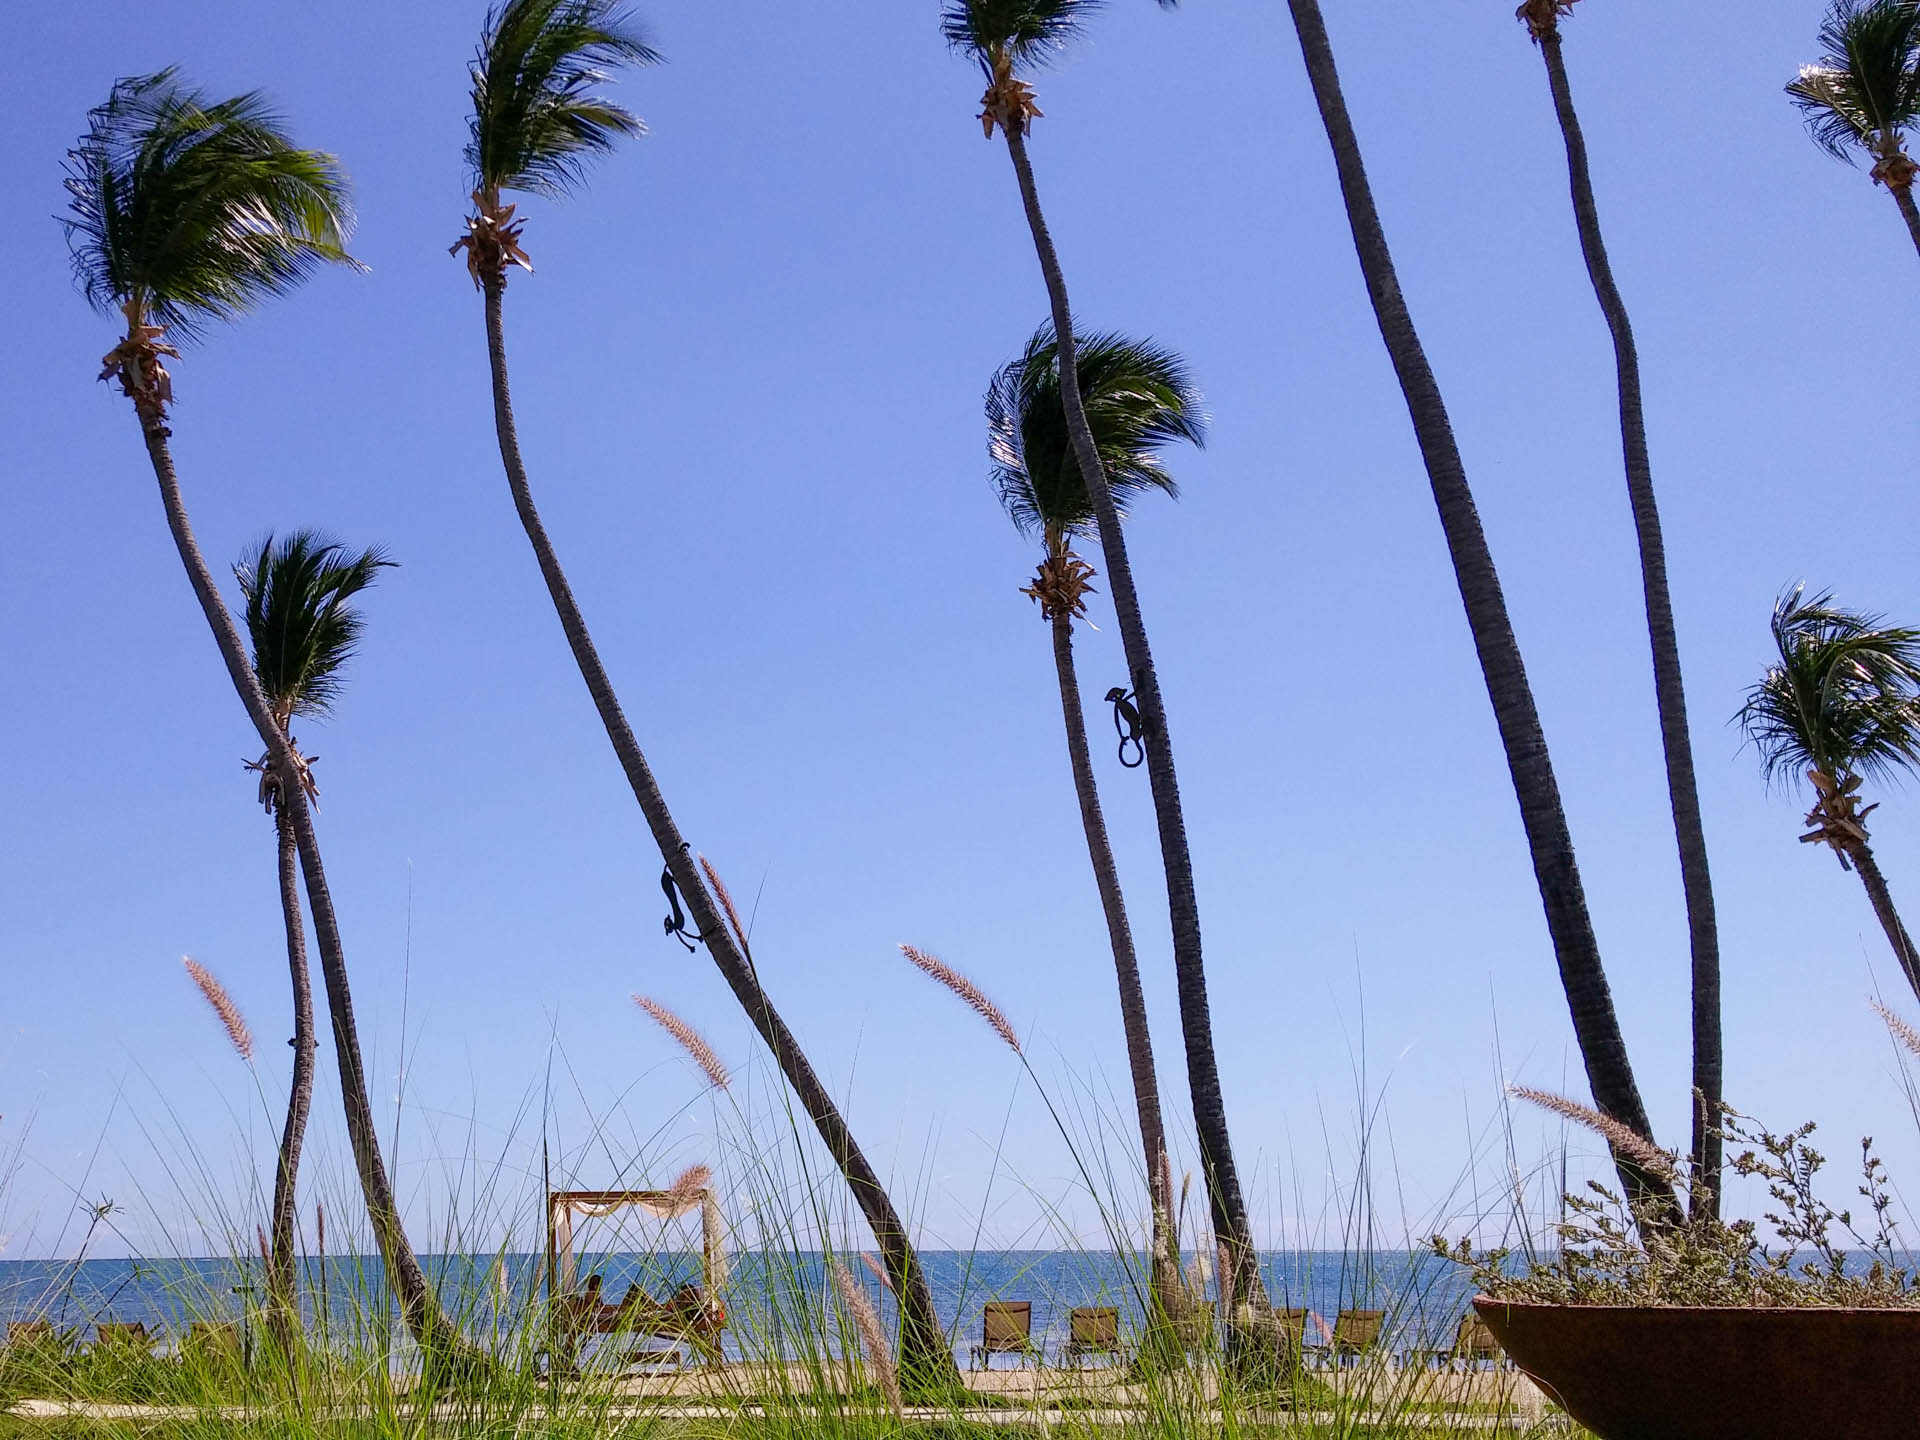 palms and grass by shore